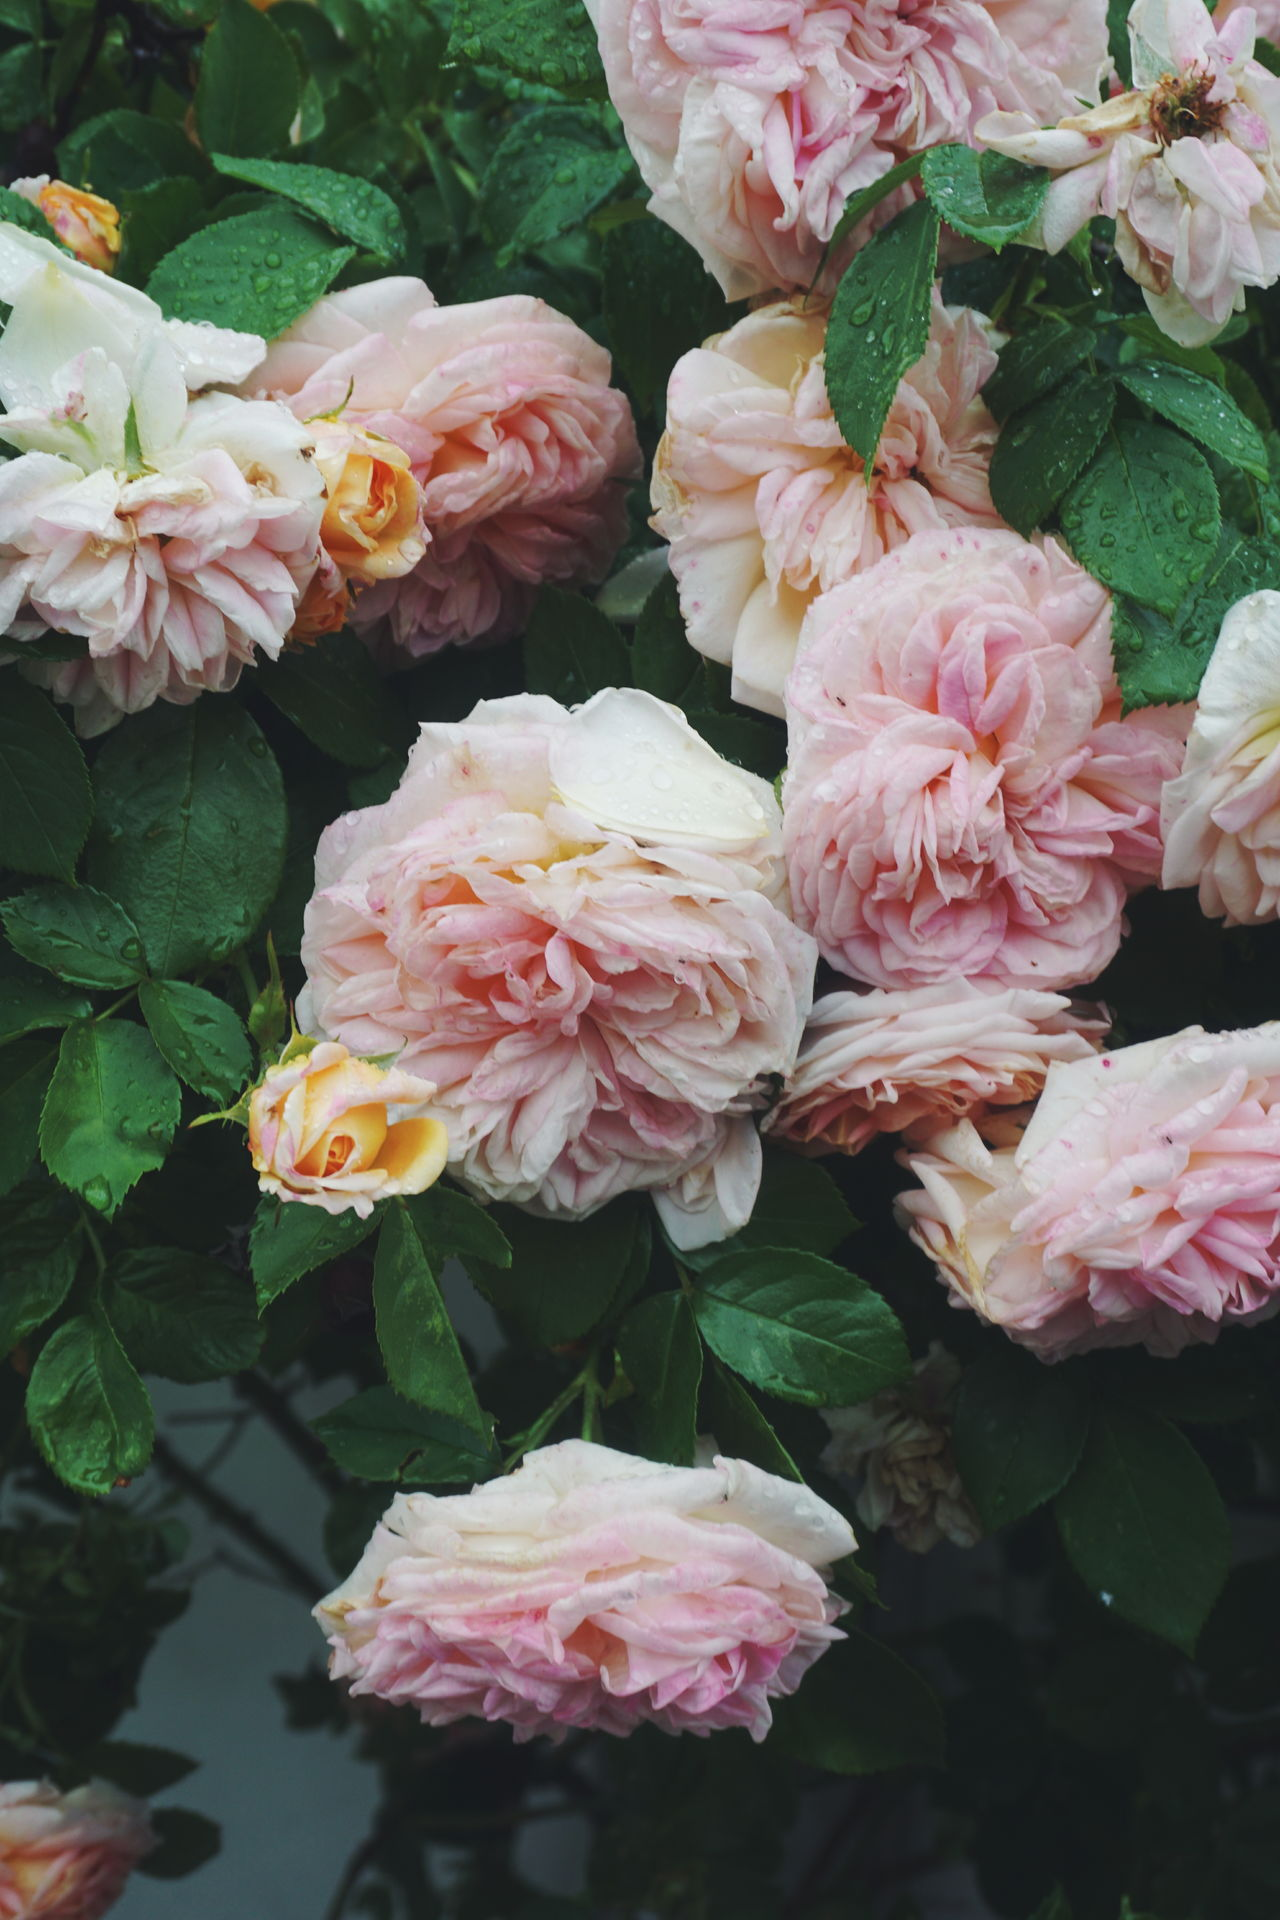 Pink roses in rain Beauty In Nature Close-up Day Flower Flower Head Fragility Freshness Growth Leaf Nature No People Outdoors Peony  Petal Pink Color Pink Rose Pink Roses Plant Rose - Flower Roses